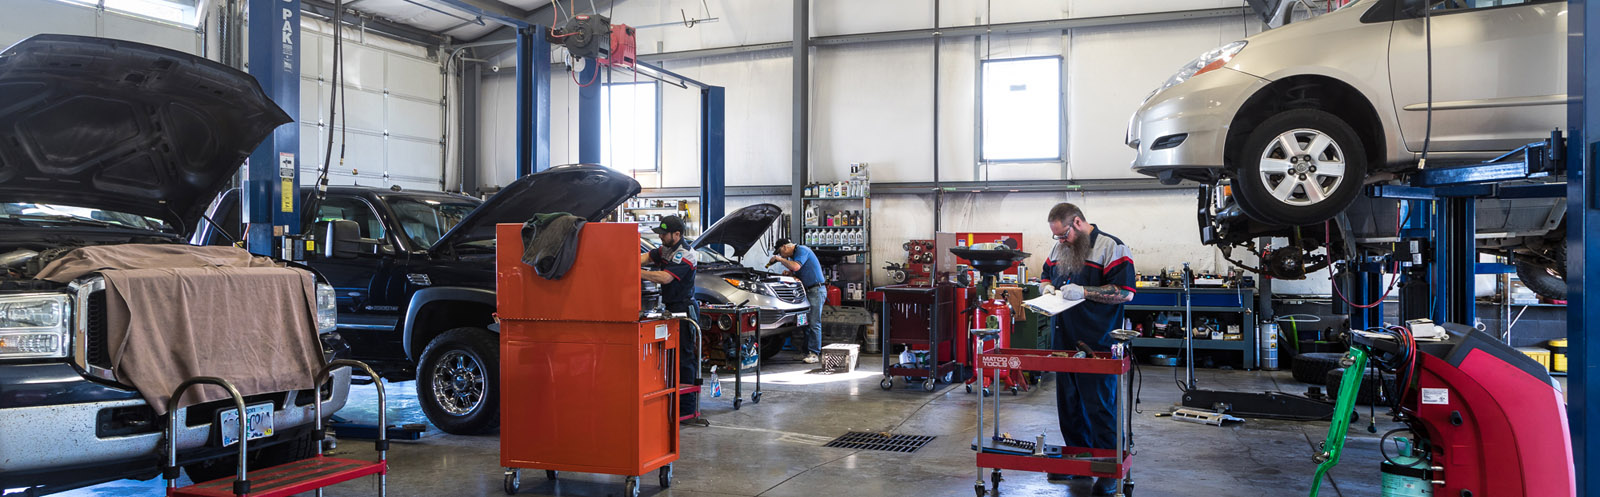 Truck Repair in central Oregon - Specialty Automotive Service & Repair